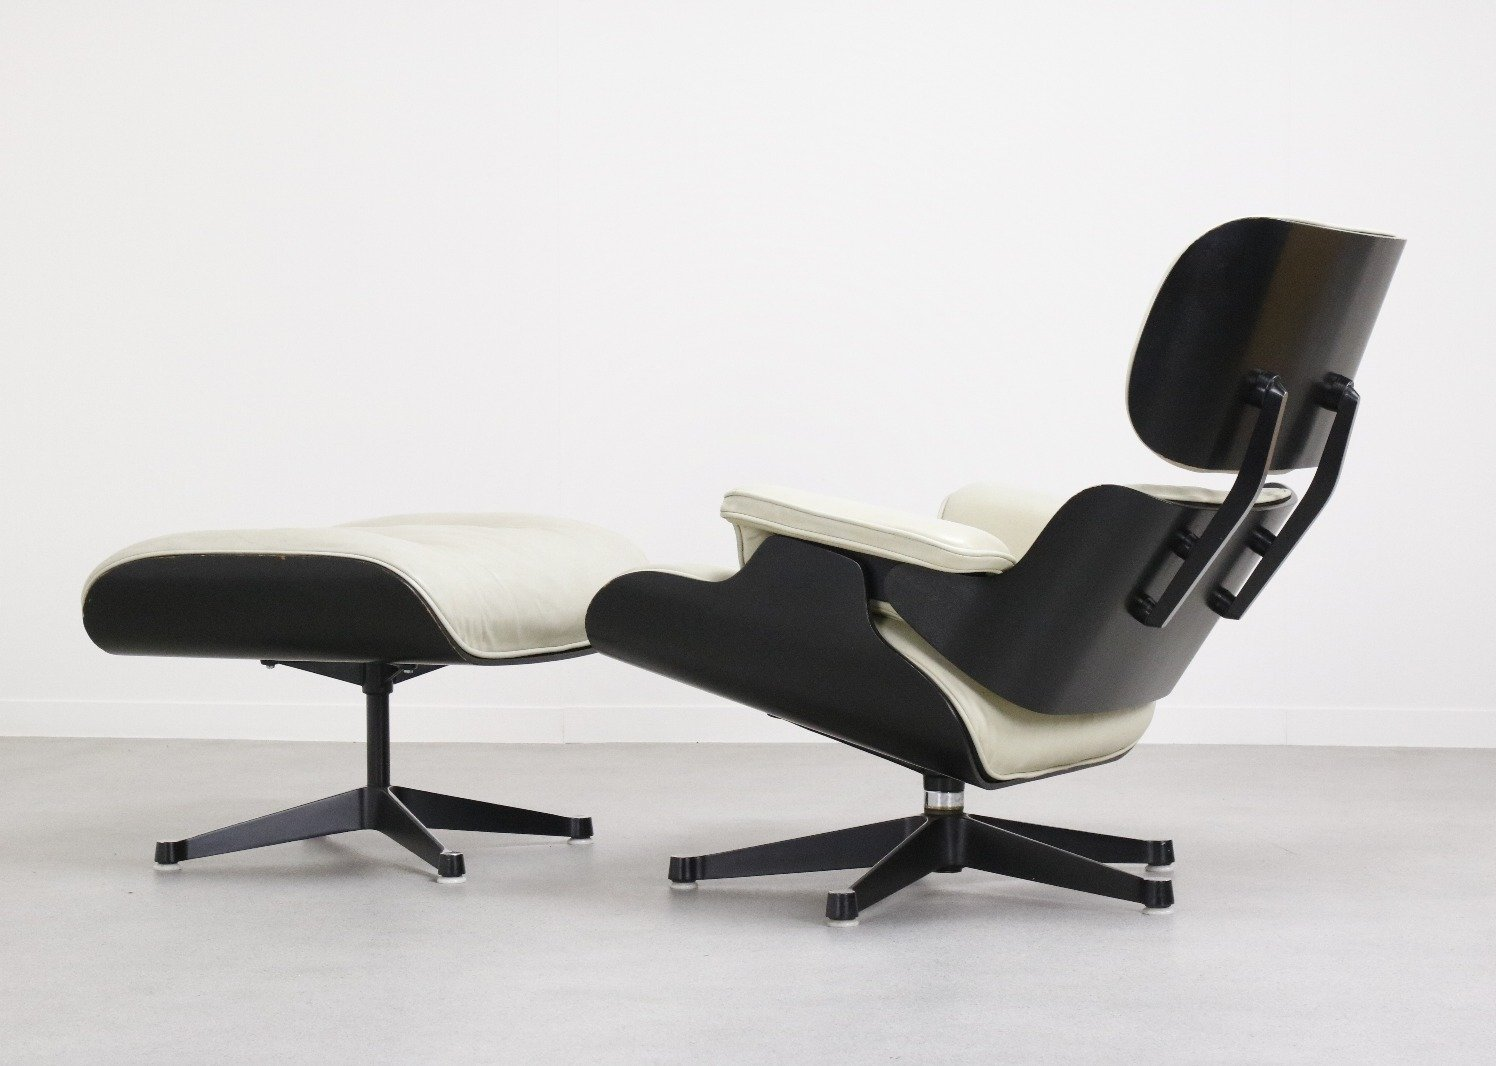 Eames Lounge Stoel : Rare charles ray eames lounge chair by fehlbaum pre vitra